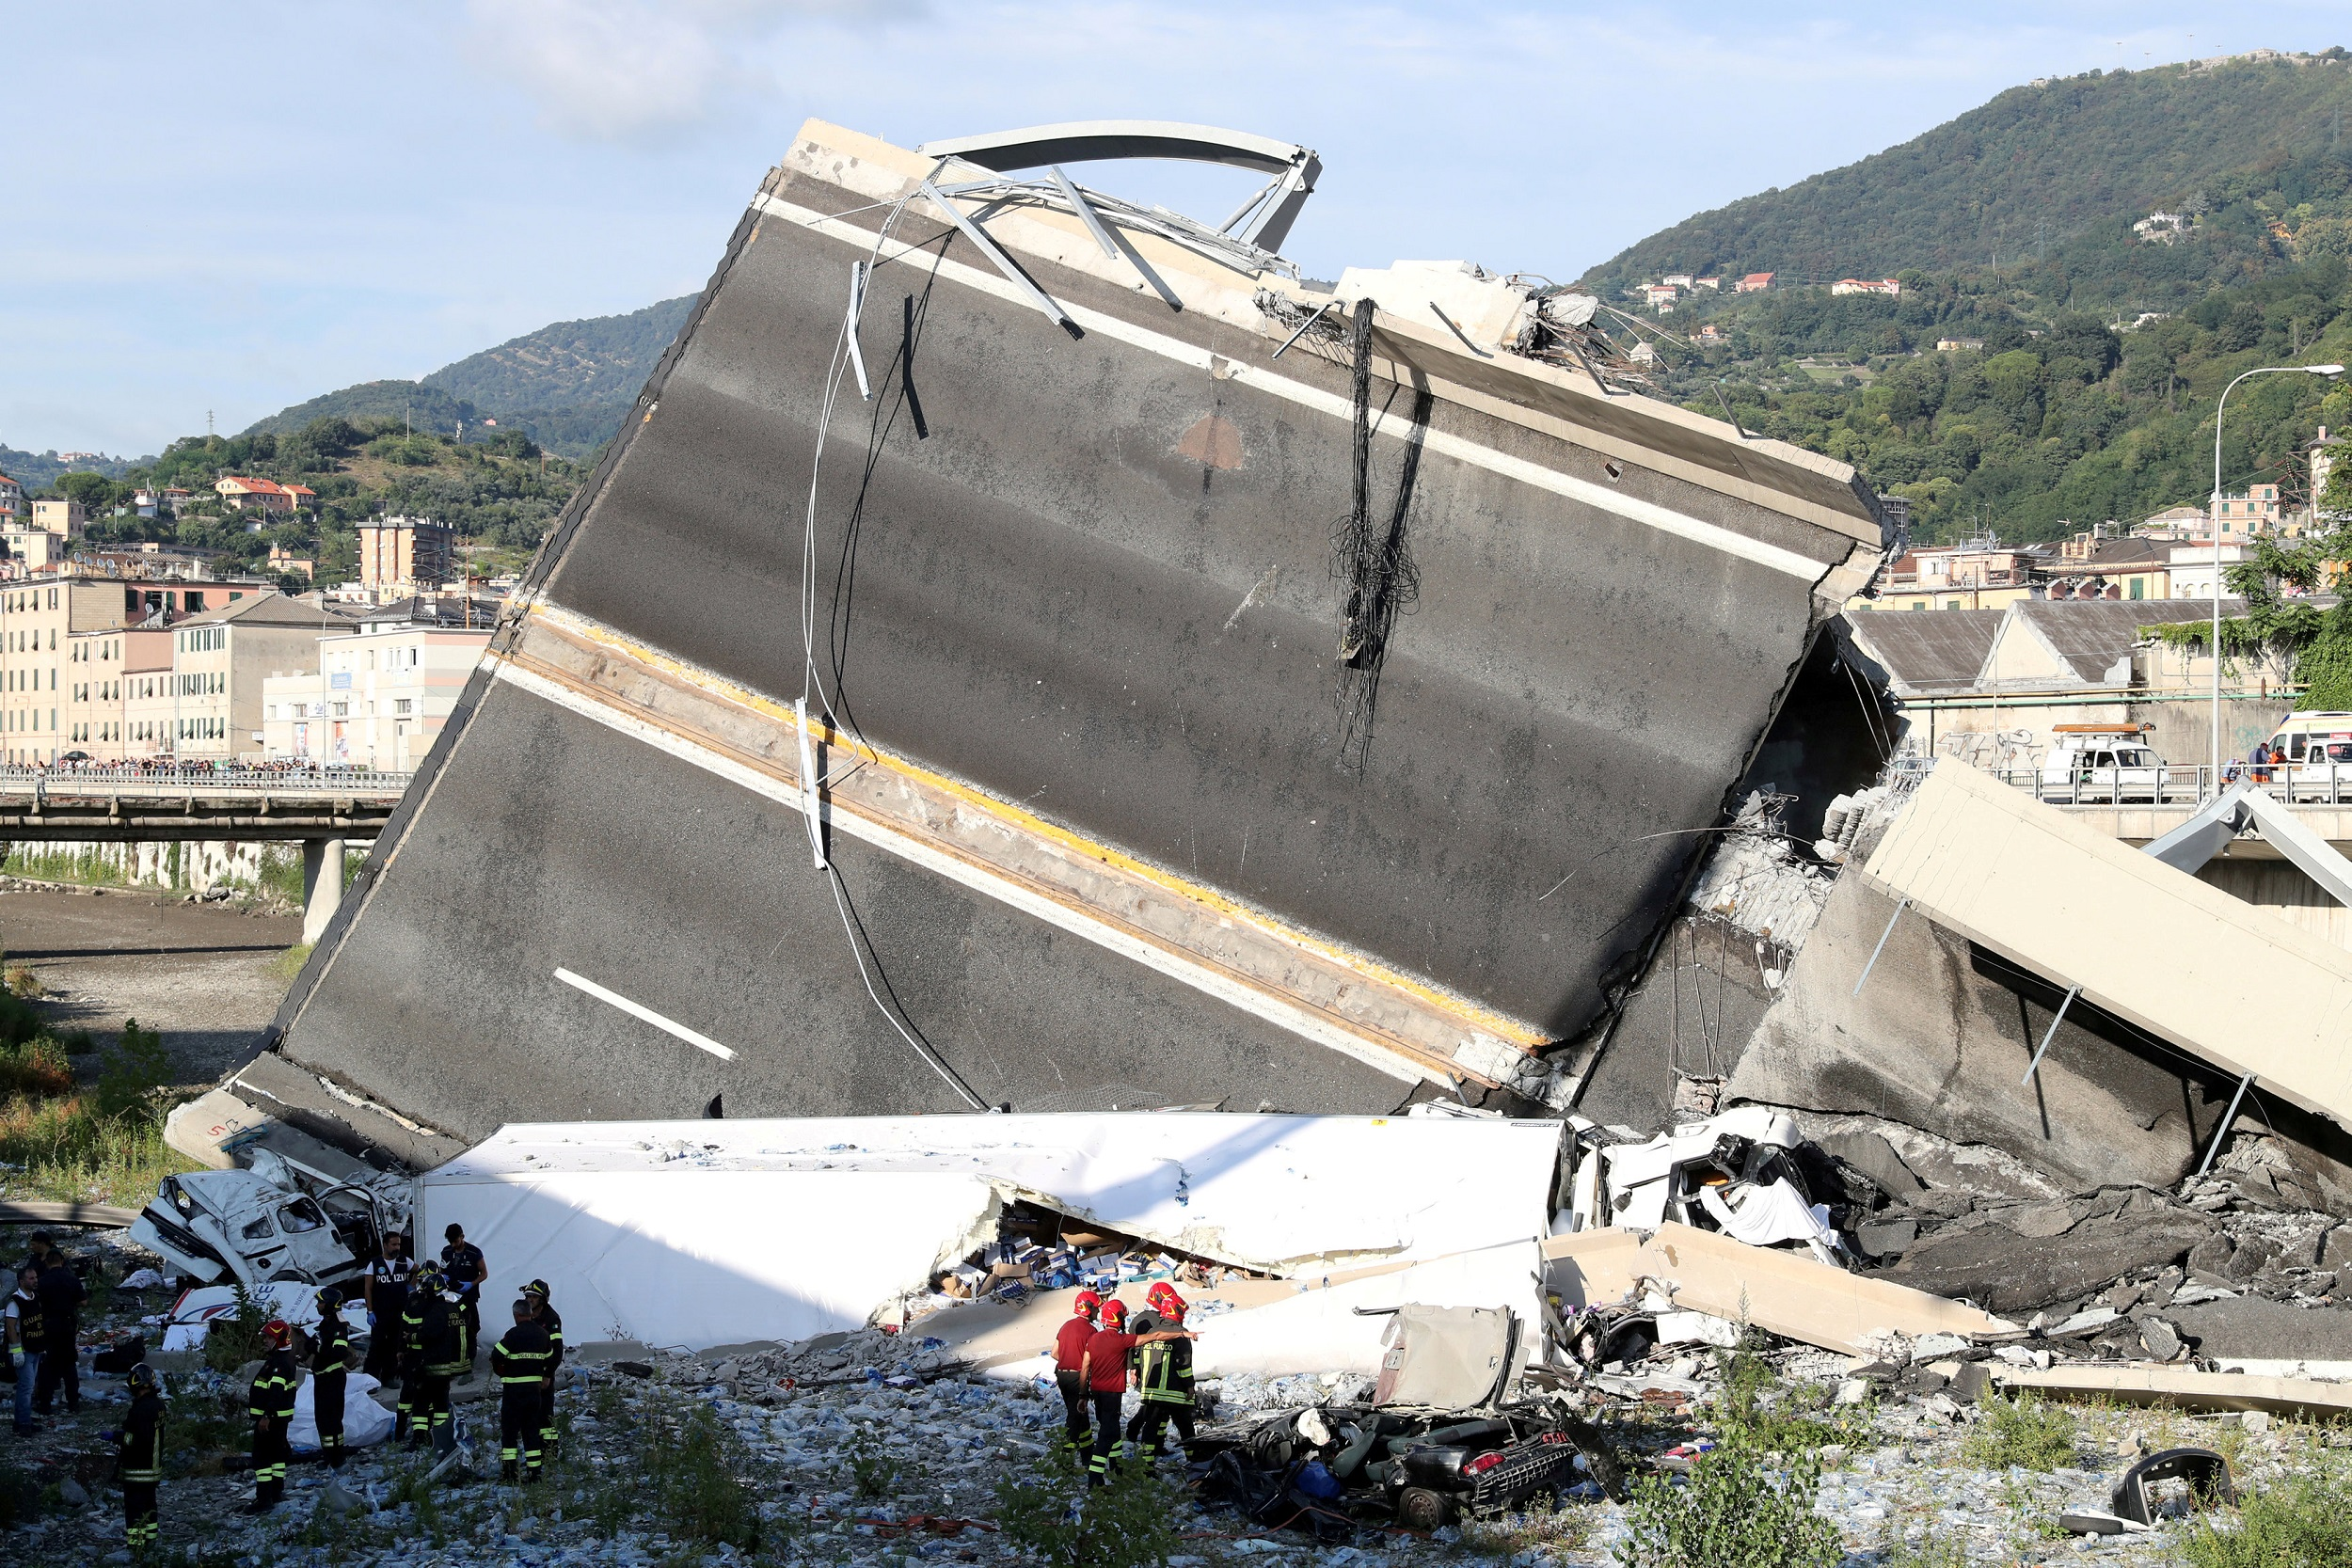 Fire in Italian bridge rubble hampers recovery efforts